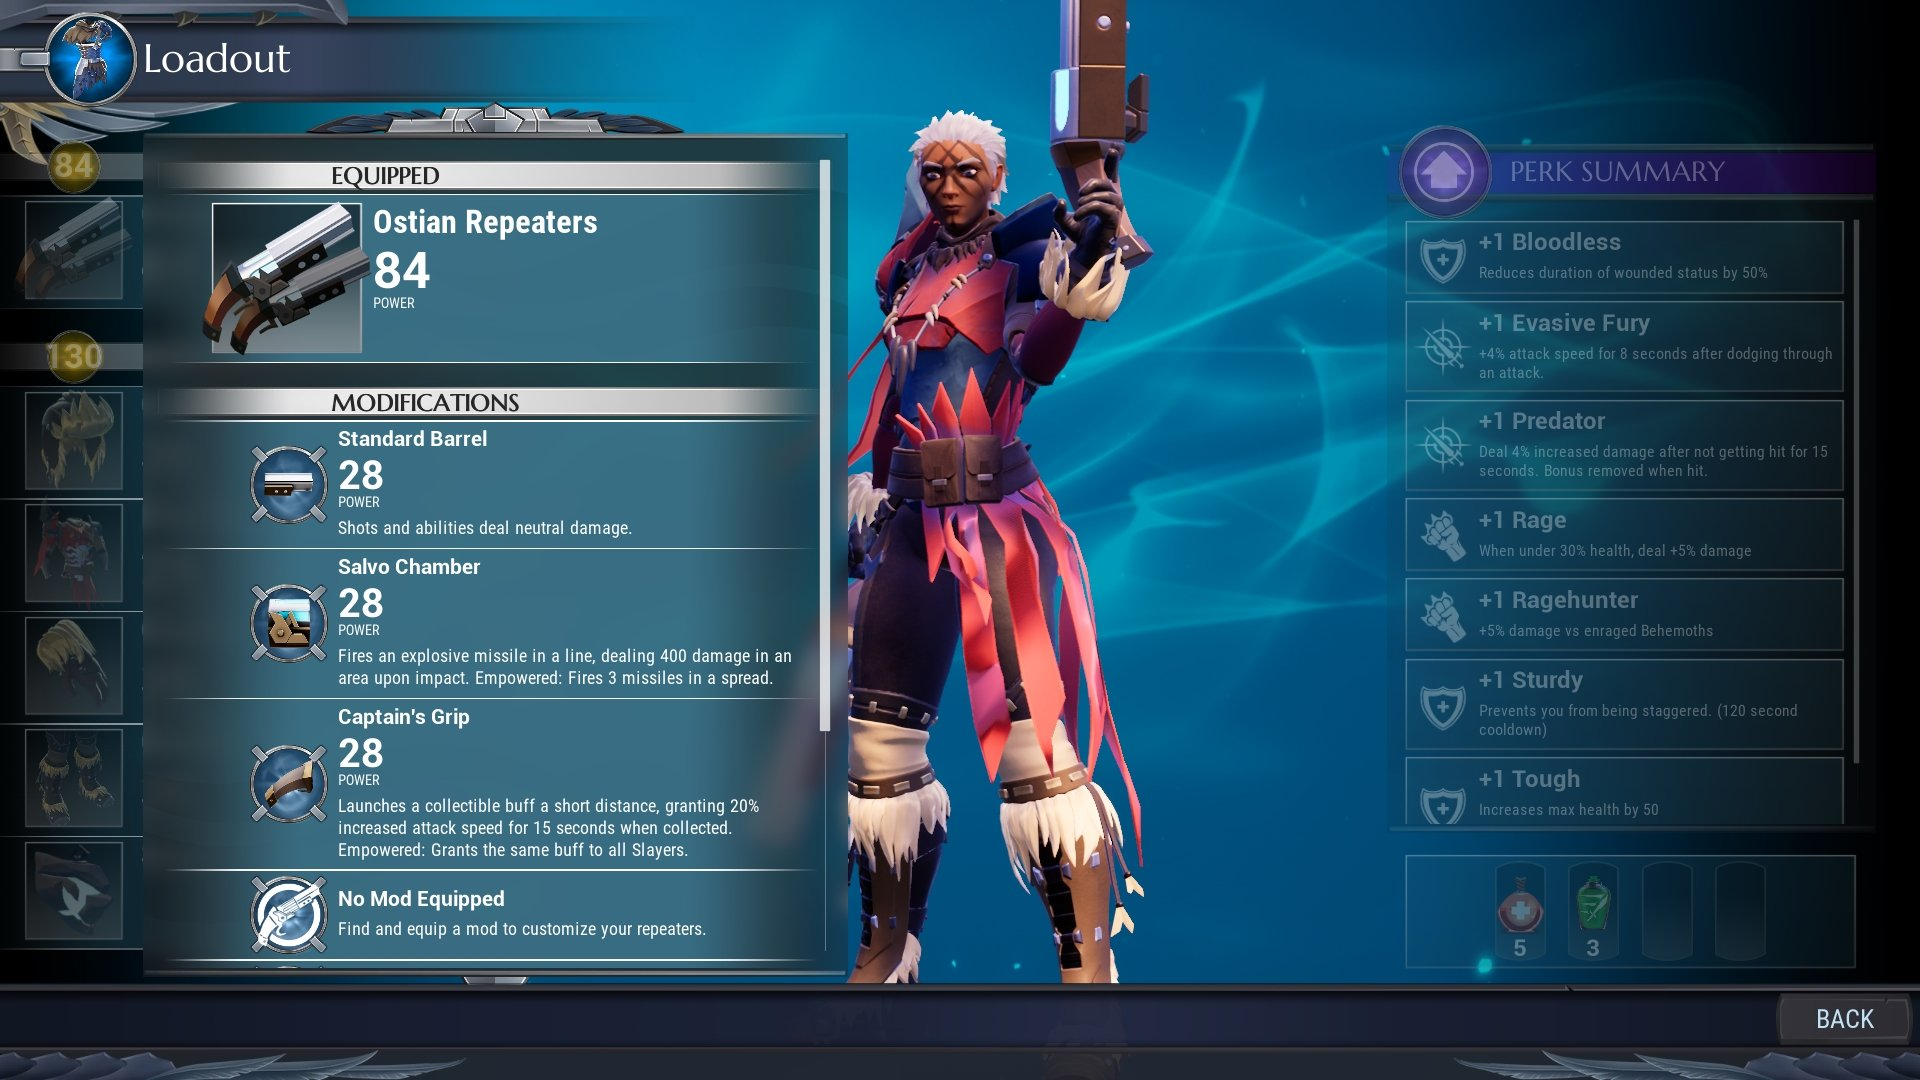 How to unlock Repeaters in Dauntless